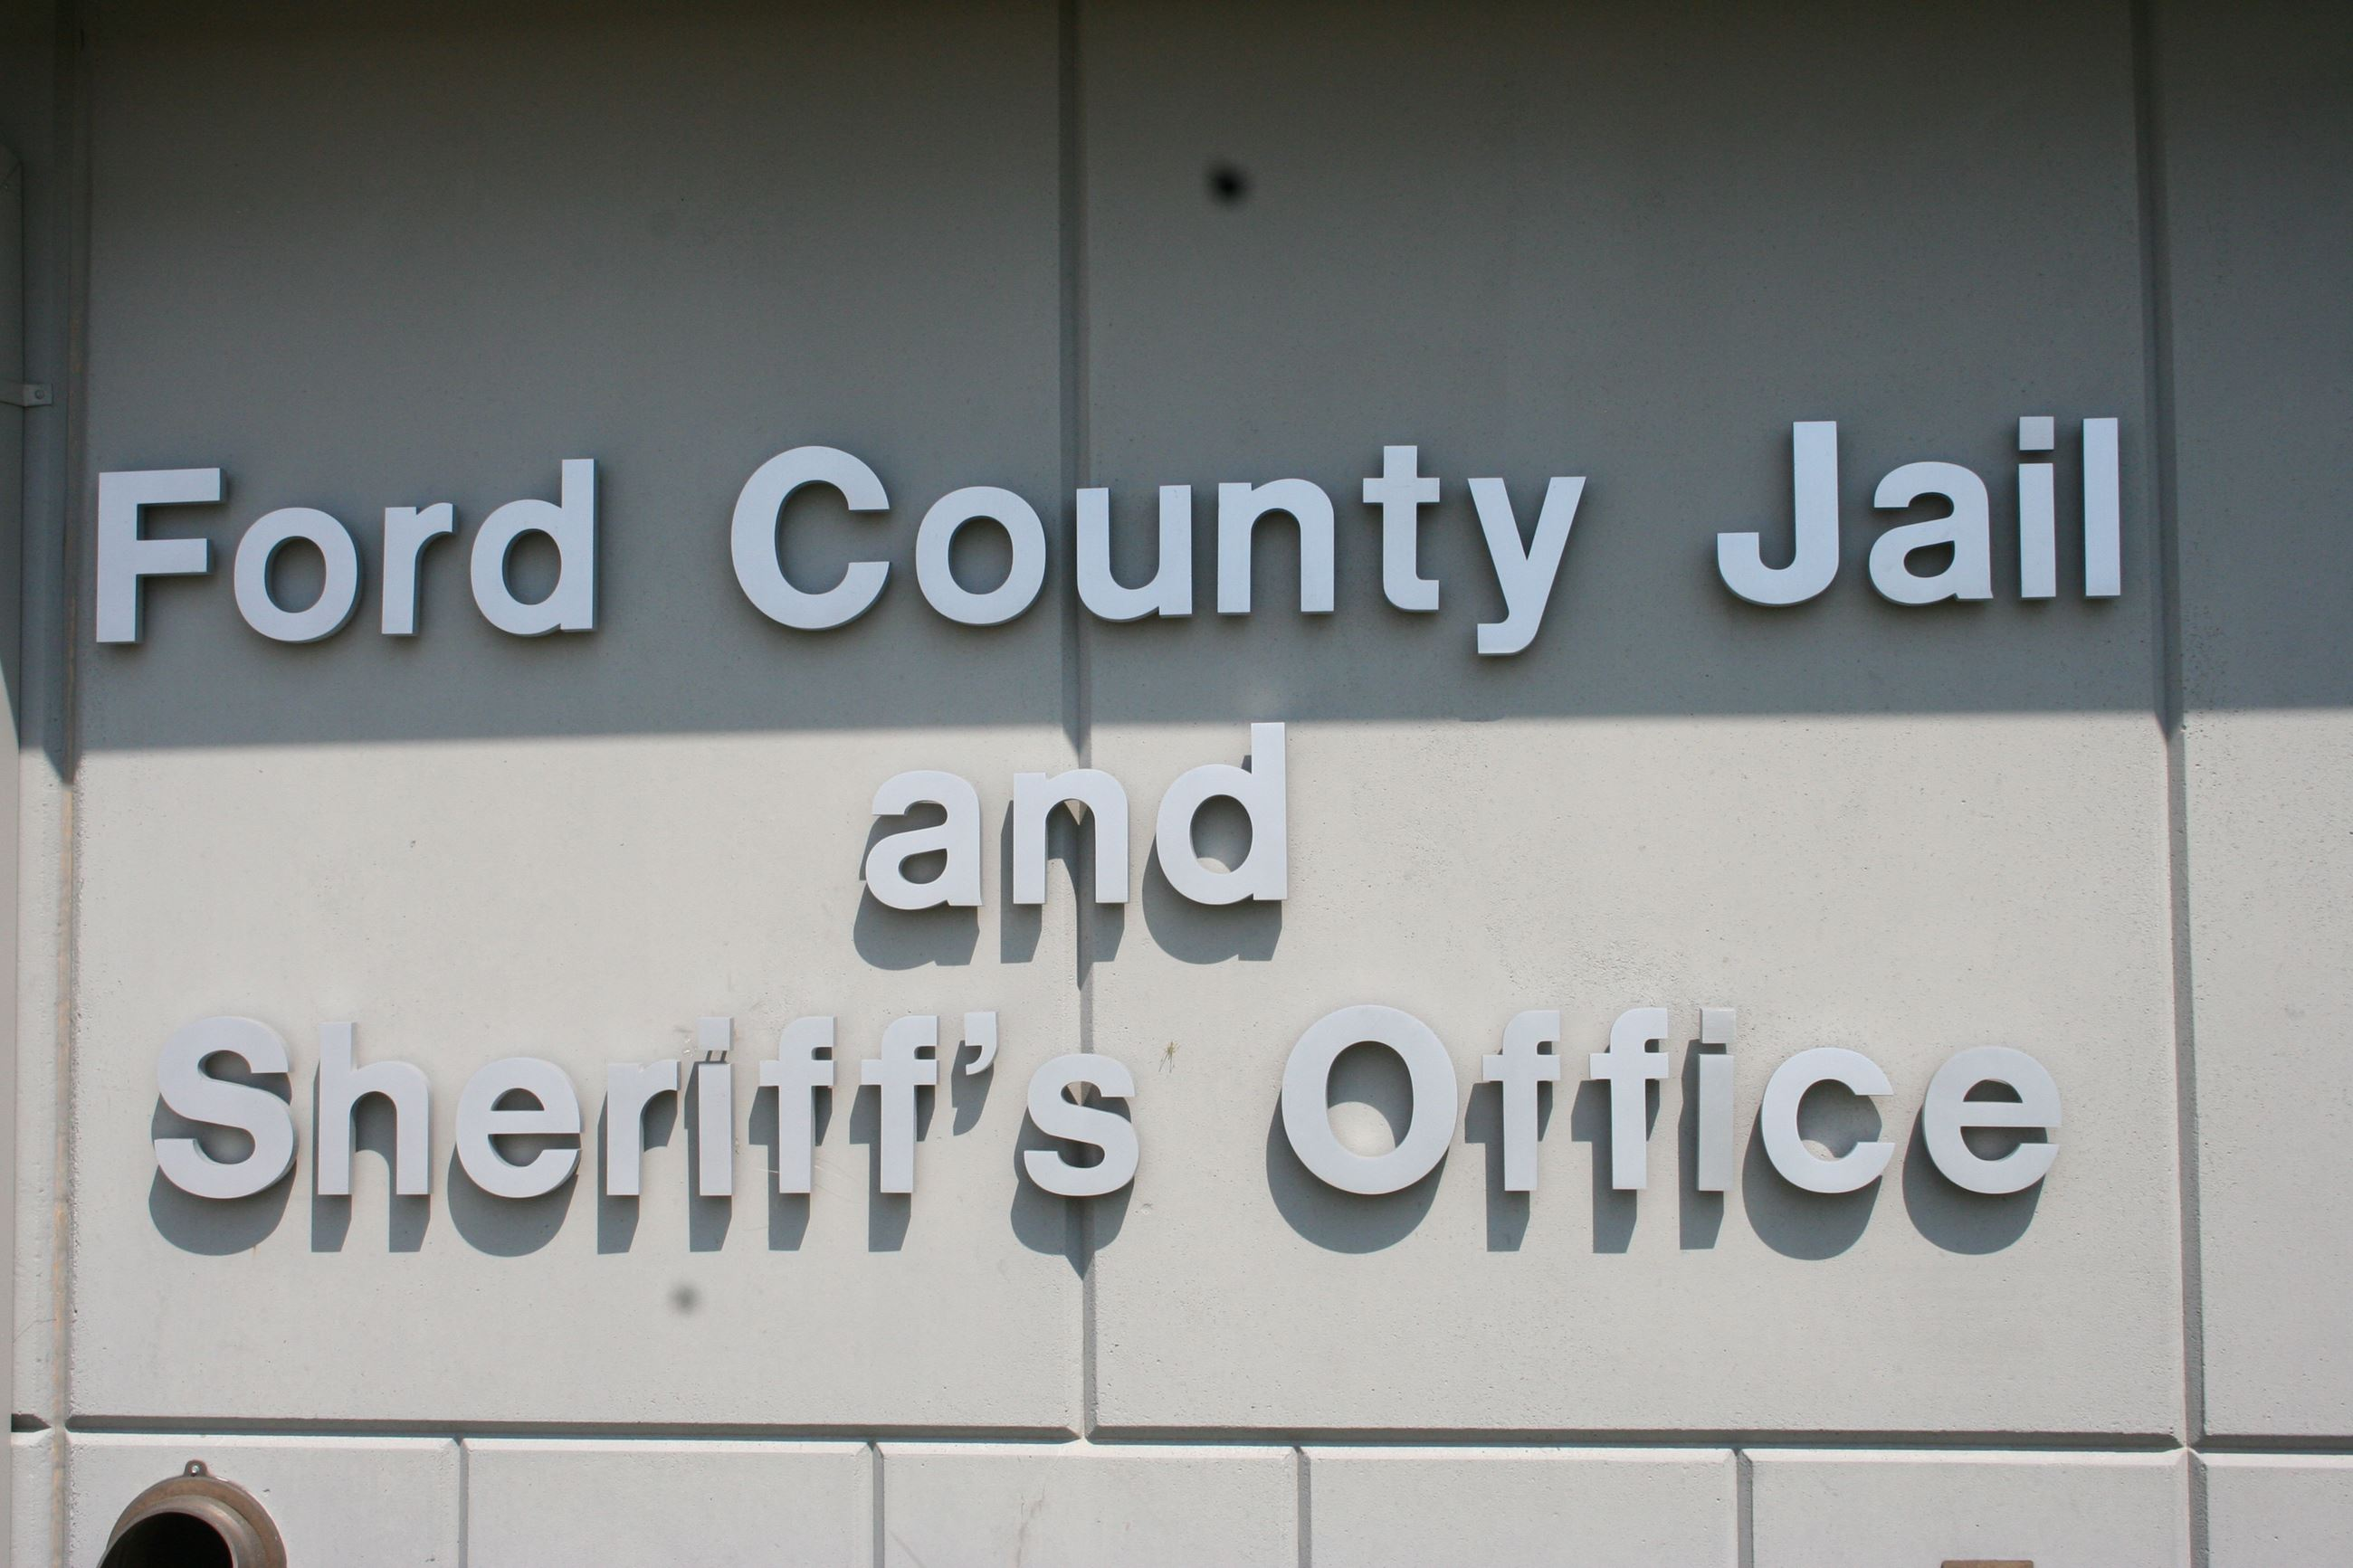 Ford County Jail and Sheriff Office Sign